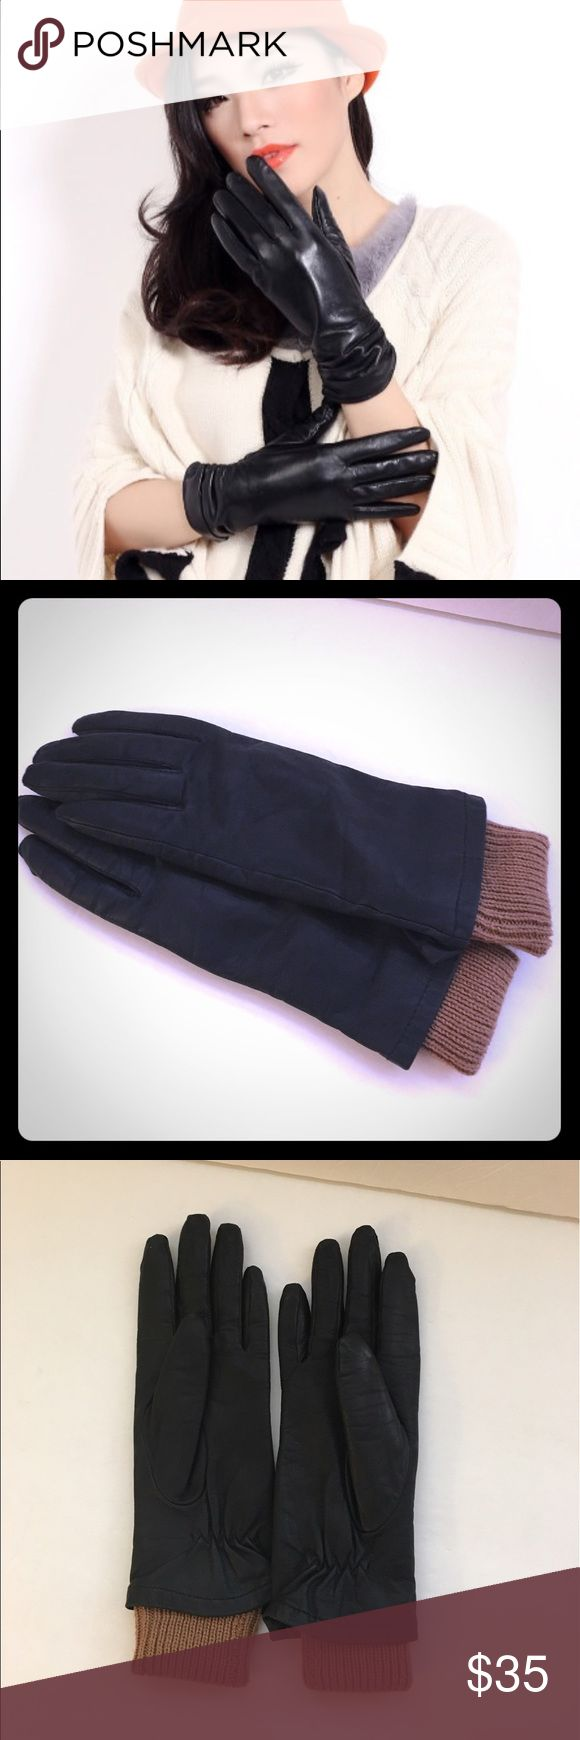 John lewis ladies black leather gloves - Fownes Black Leather Gloves